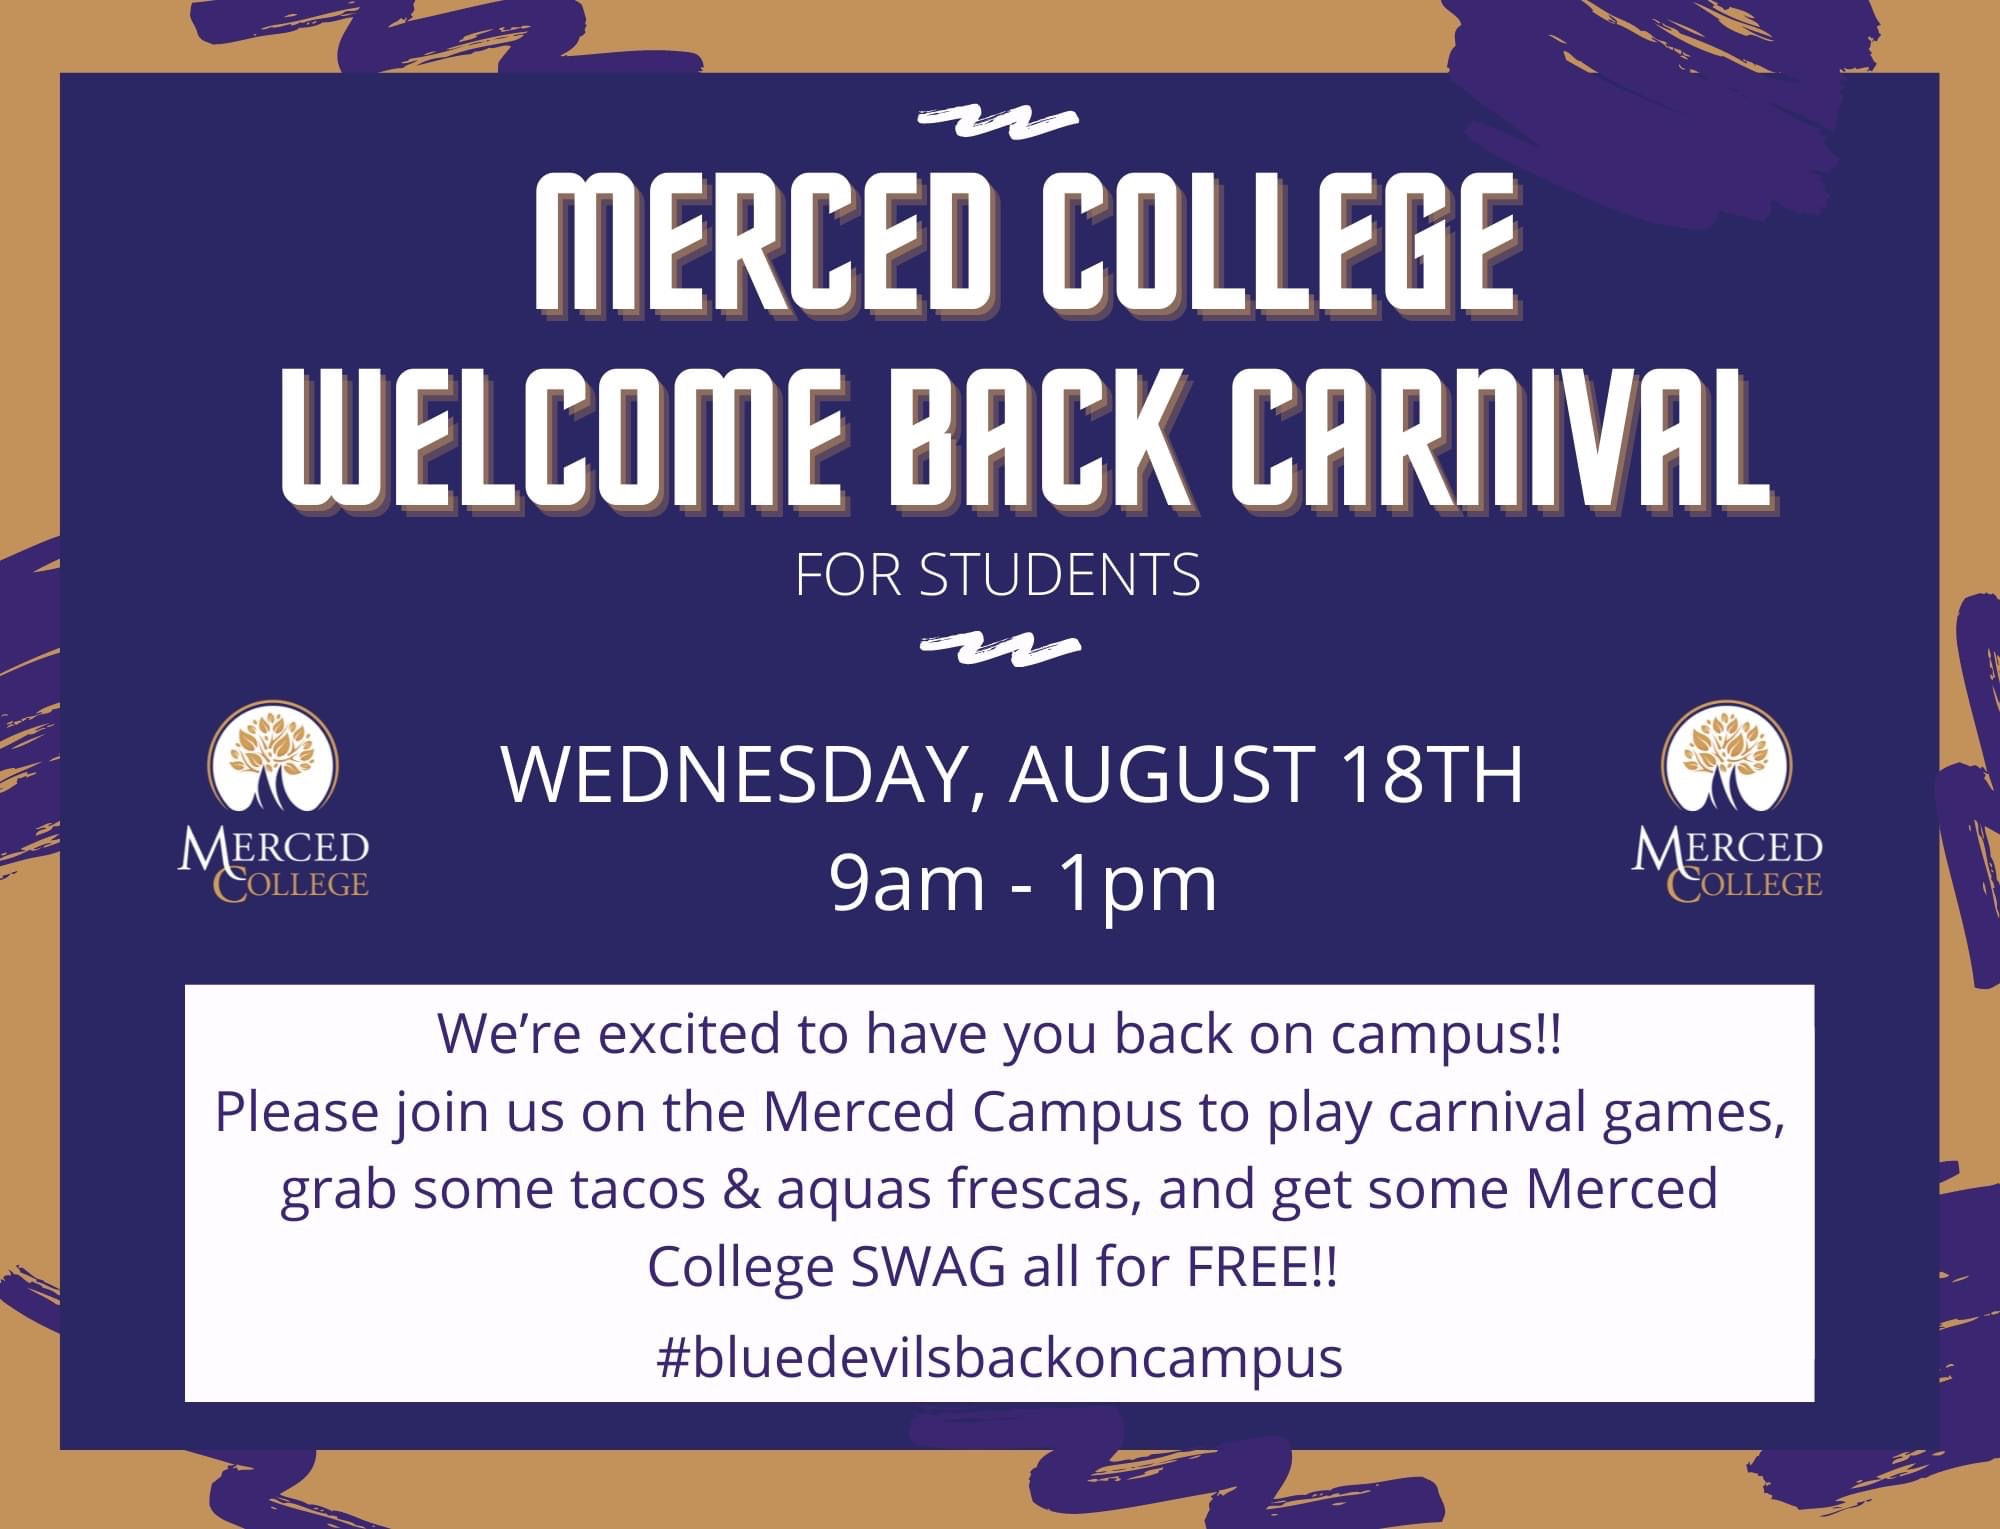 Merced College Welcome Back Carnival